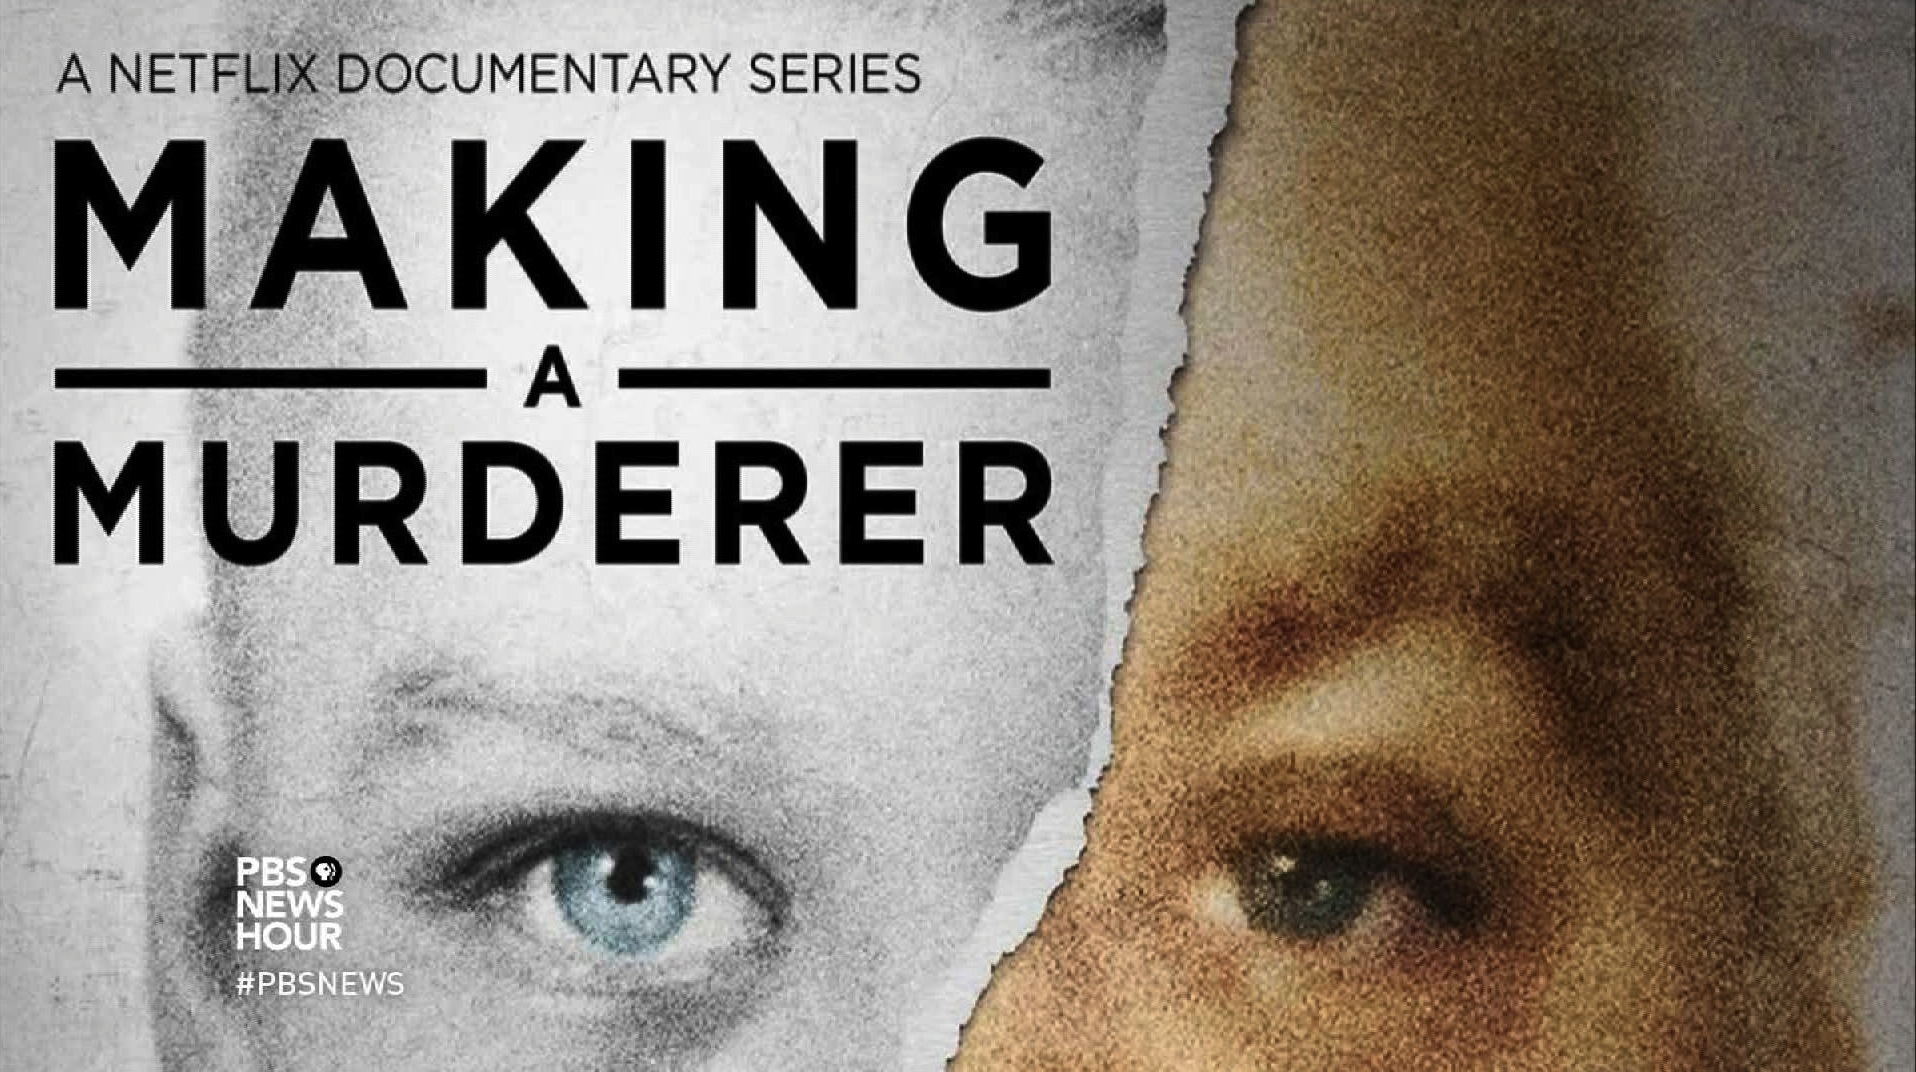 Murdering Making a Murderer: the psychology of spoilers